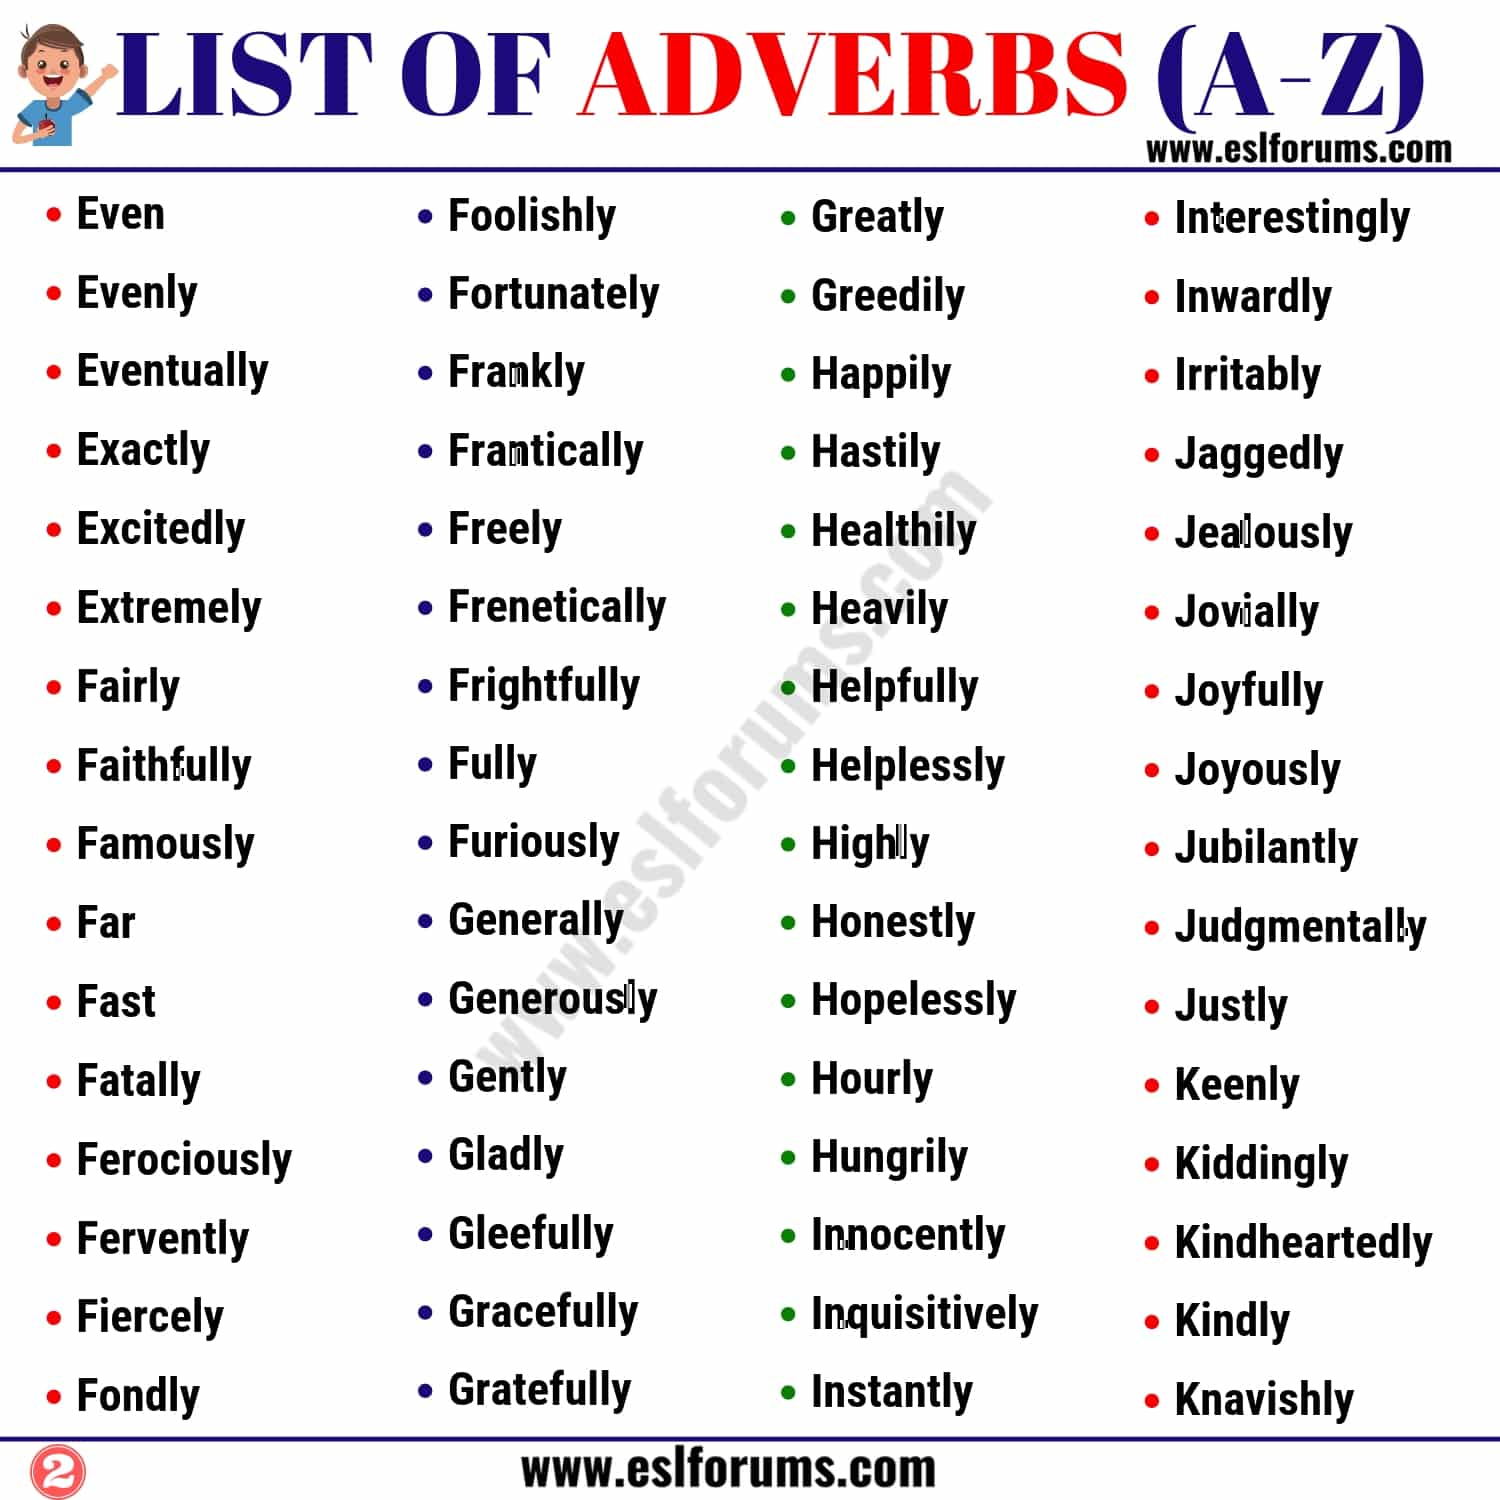 List of Adverbs: 300+ Adverb Examples from A-Z in English